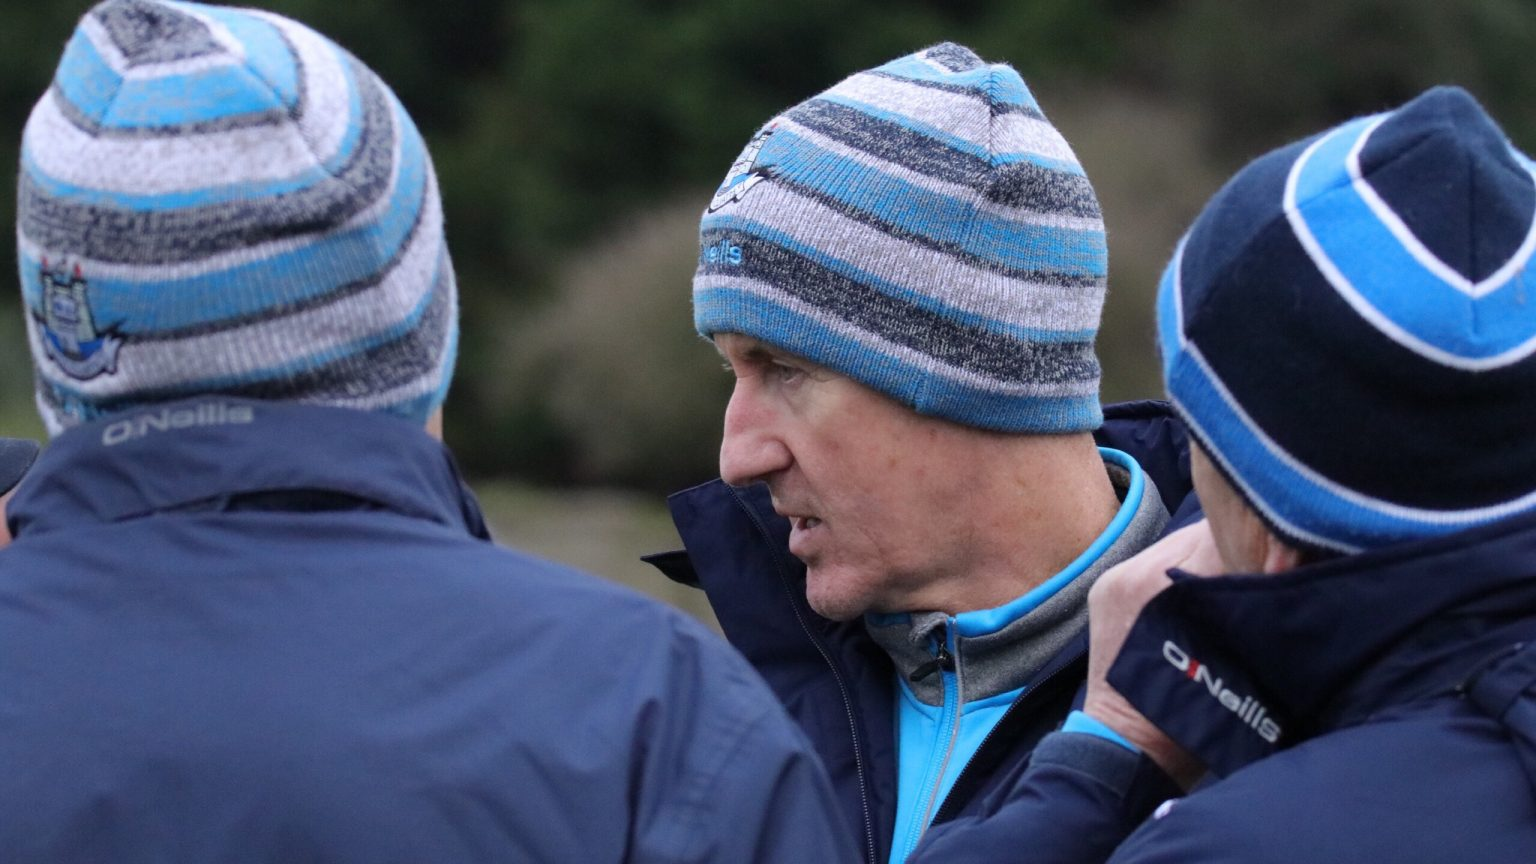 BYRNE, BASQUEL AND O'GARA GIVE GAVIN AND CLARKE FOOD FOR THOUGHT